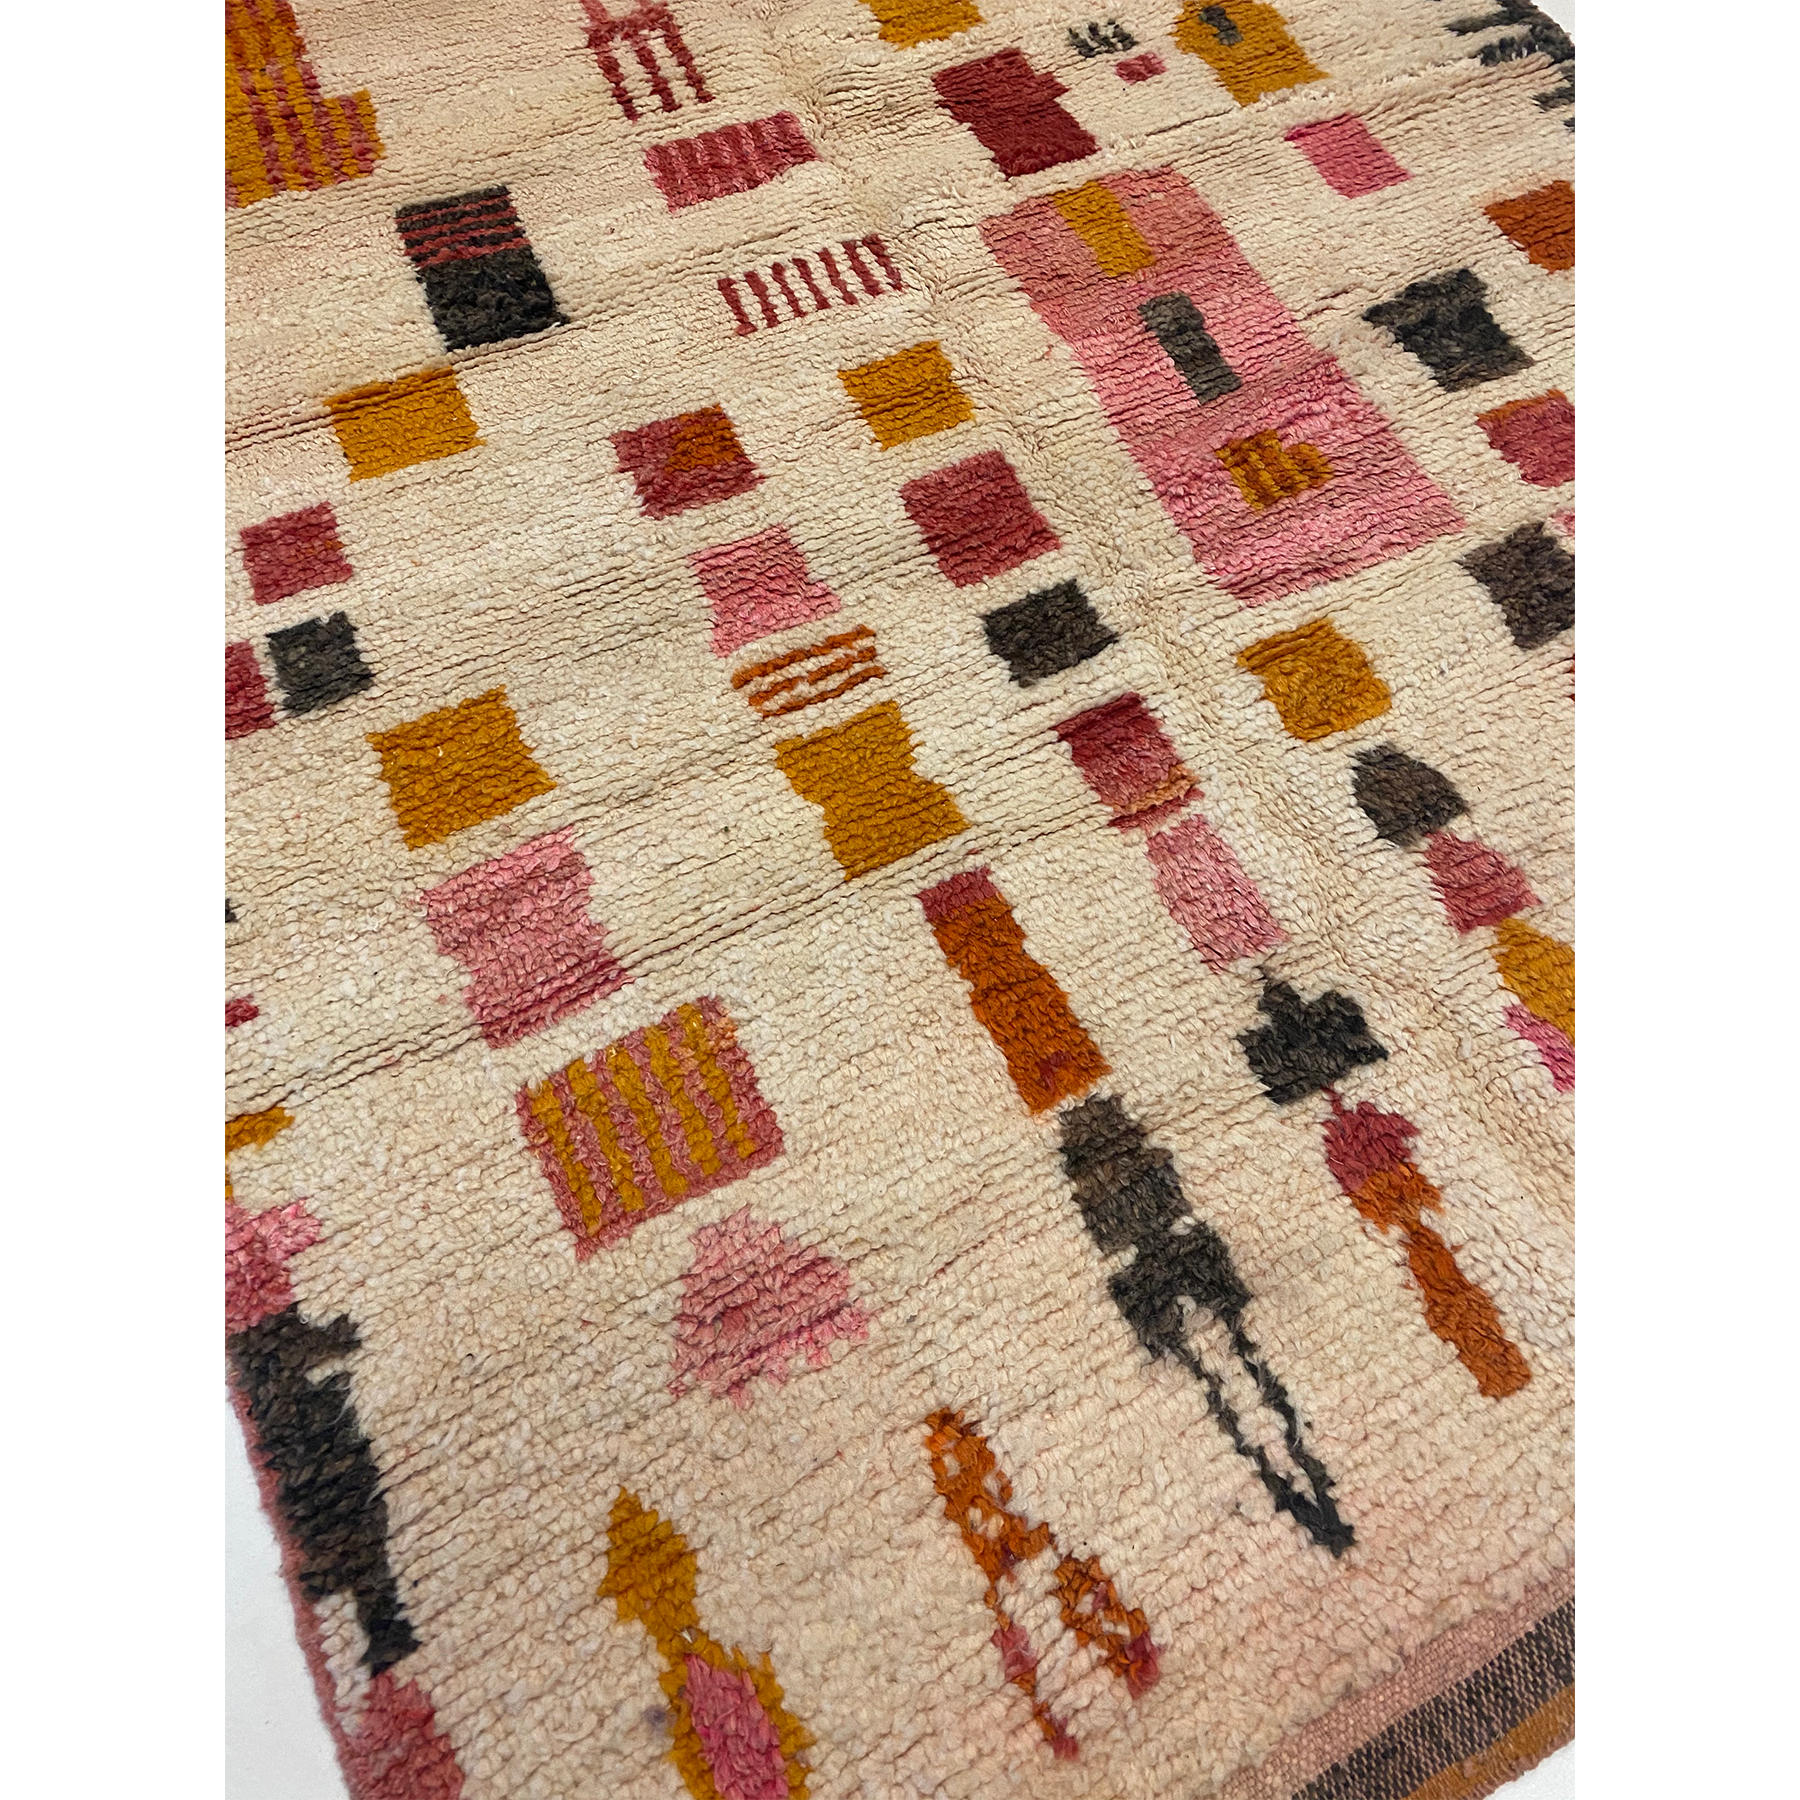 cream-colored Moroccan rug with designs in blush pink and mustard yellow